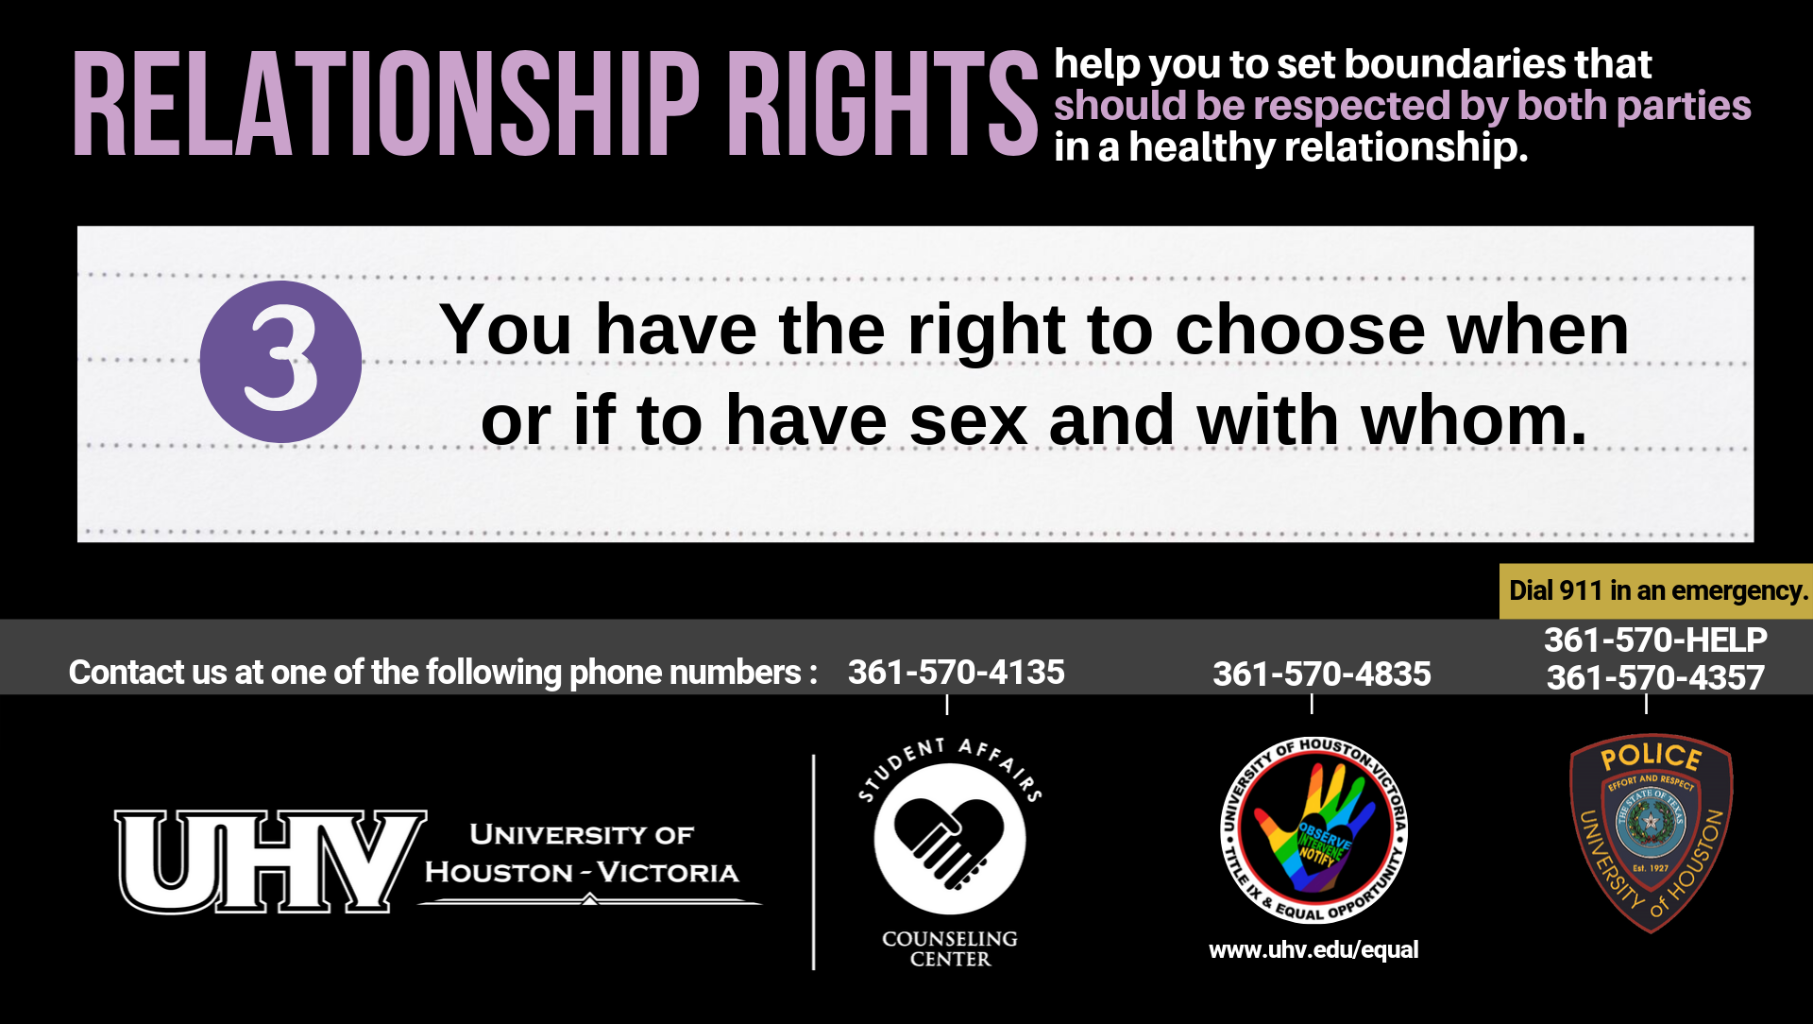 Relationship Rights help you to set boundaries that should be respected by both parties in a healthy relationship. 3. You have the right to choose when or if to have sex and with whom. University of Houston-Victoria Title IX and Equal Opportunity Logo (rainbow hand with heart insert with words Observe, Intervene, Notify).